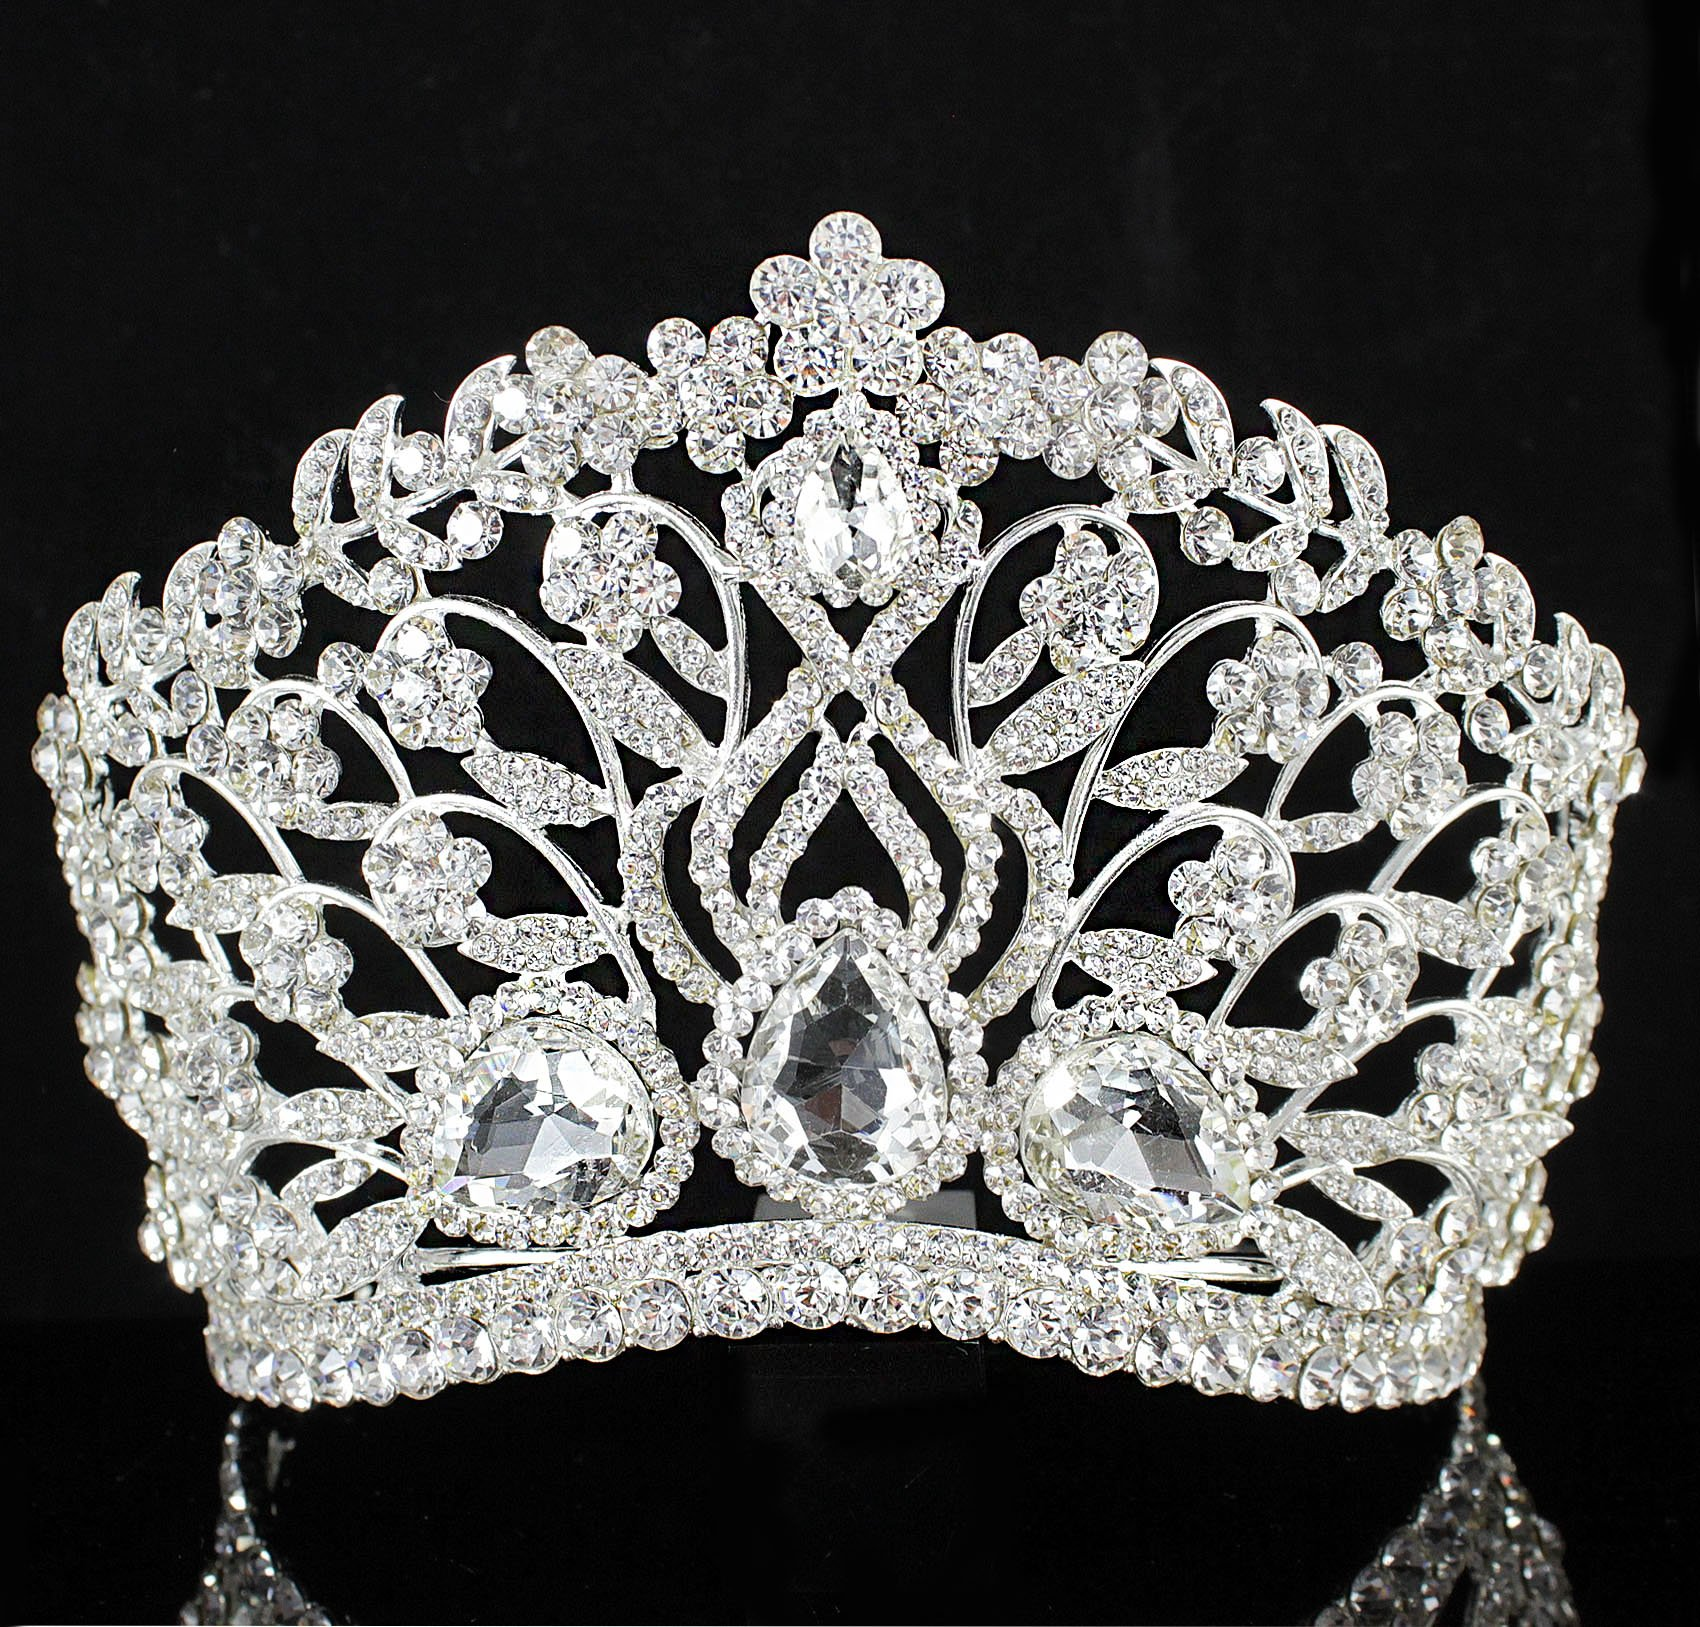 Janefashions Large Floral Clear White Austrian Rhinestone Crystal Tiara Crown With Hair Comb Headband Veil Headpiece Beauty Queen Princess Pageant Theater Show Bridal Silver T901 by Janefashions